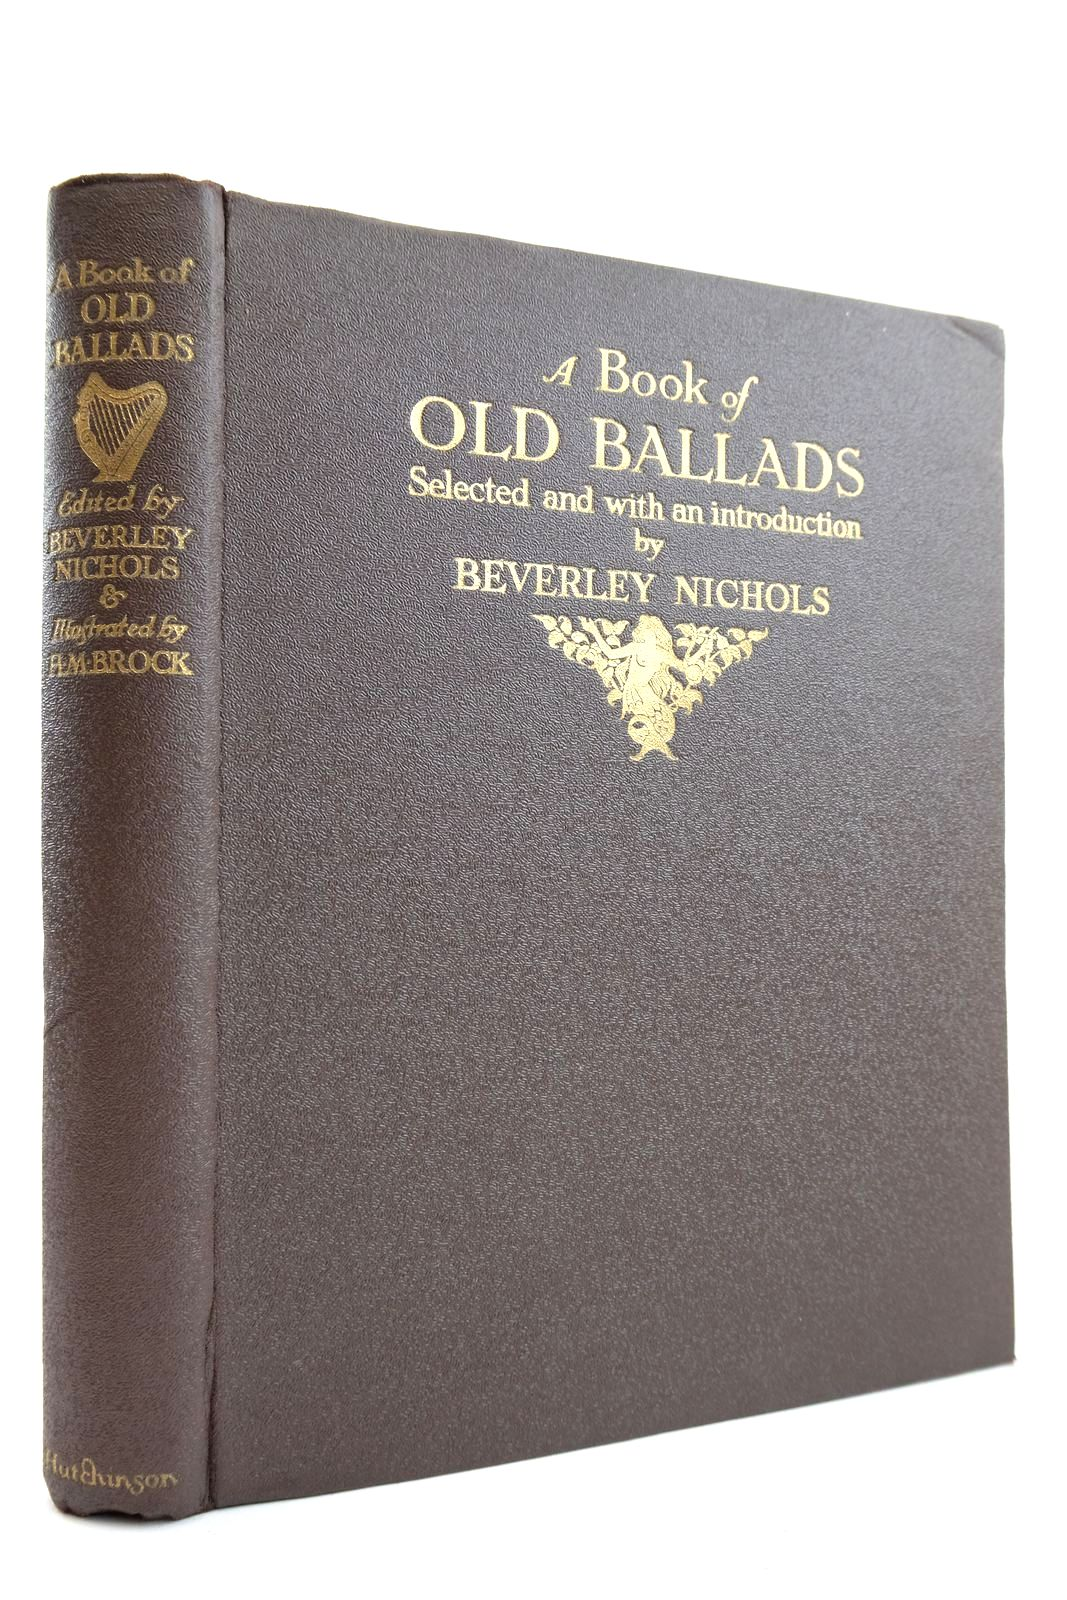 Photo of A BOOK OF OLD BALLADS written by Nichols, Beverley illustrated by Brock, H.M. published by Hutchinson & Co. Ltd (STOCK CODE: 2132698)  for sale by Stella & Rose's Books